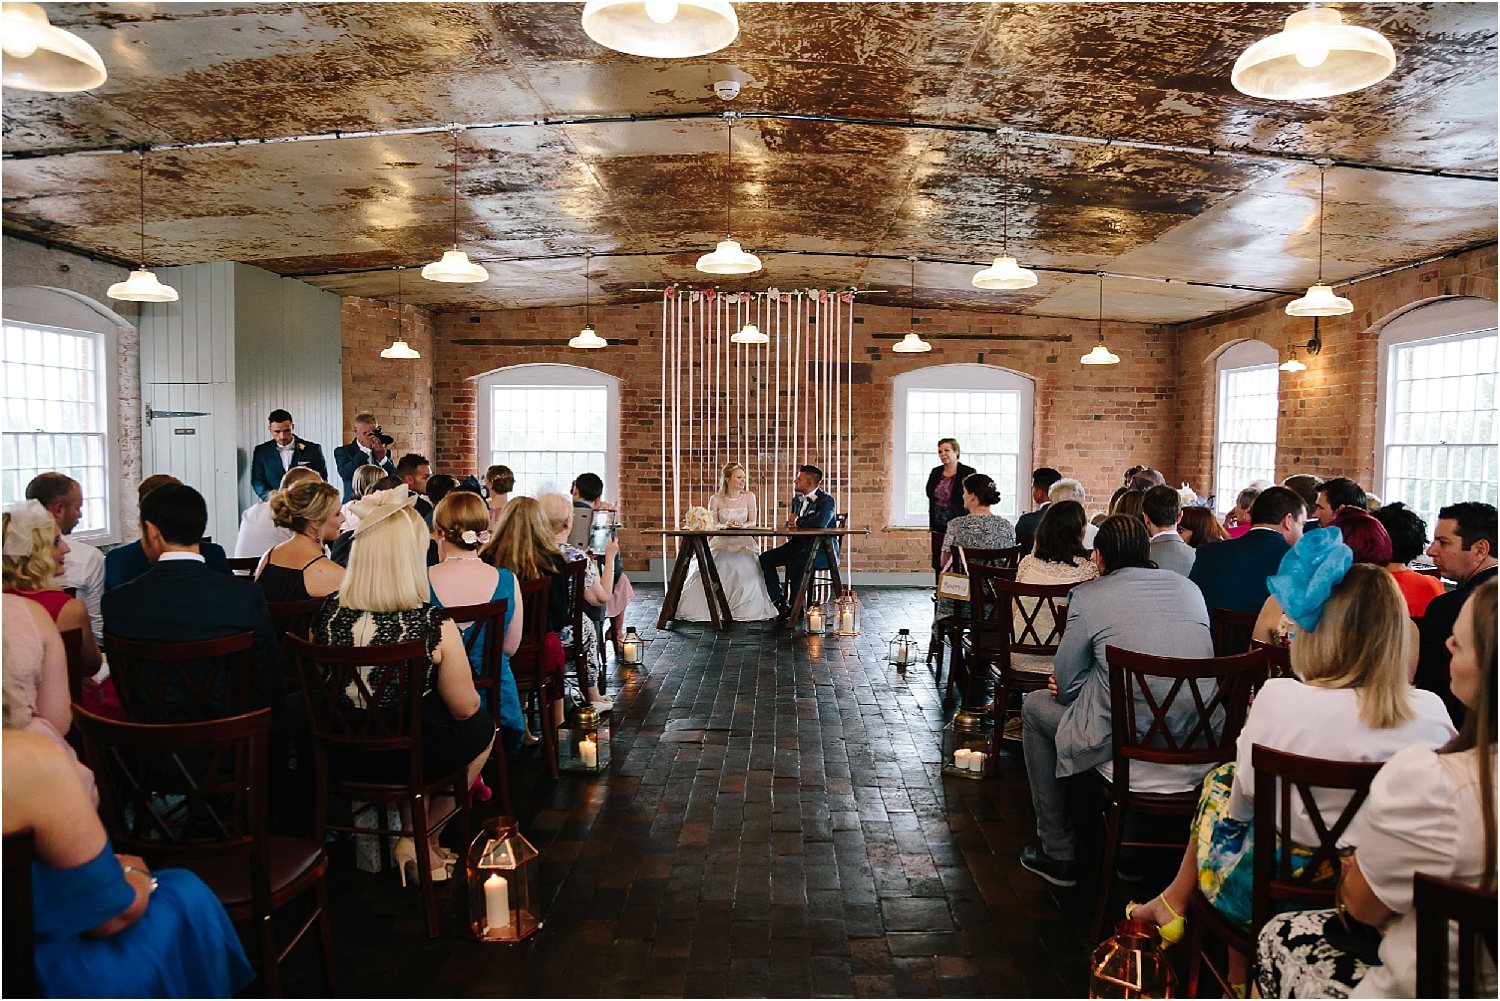 Wedding-west-mill-venue-professional-photographer-natural-documentary-nottingham-derby-139_BLOG.jpg